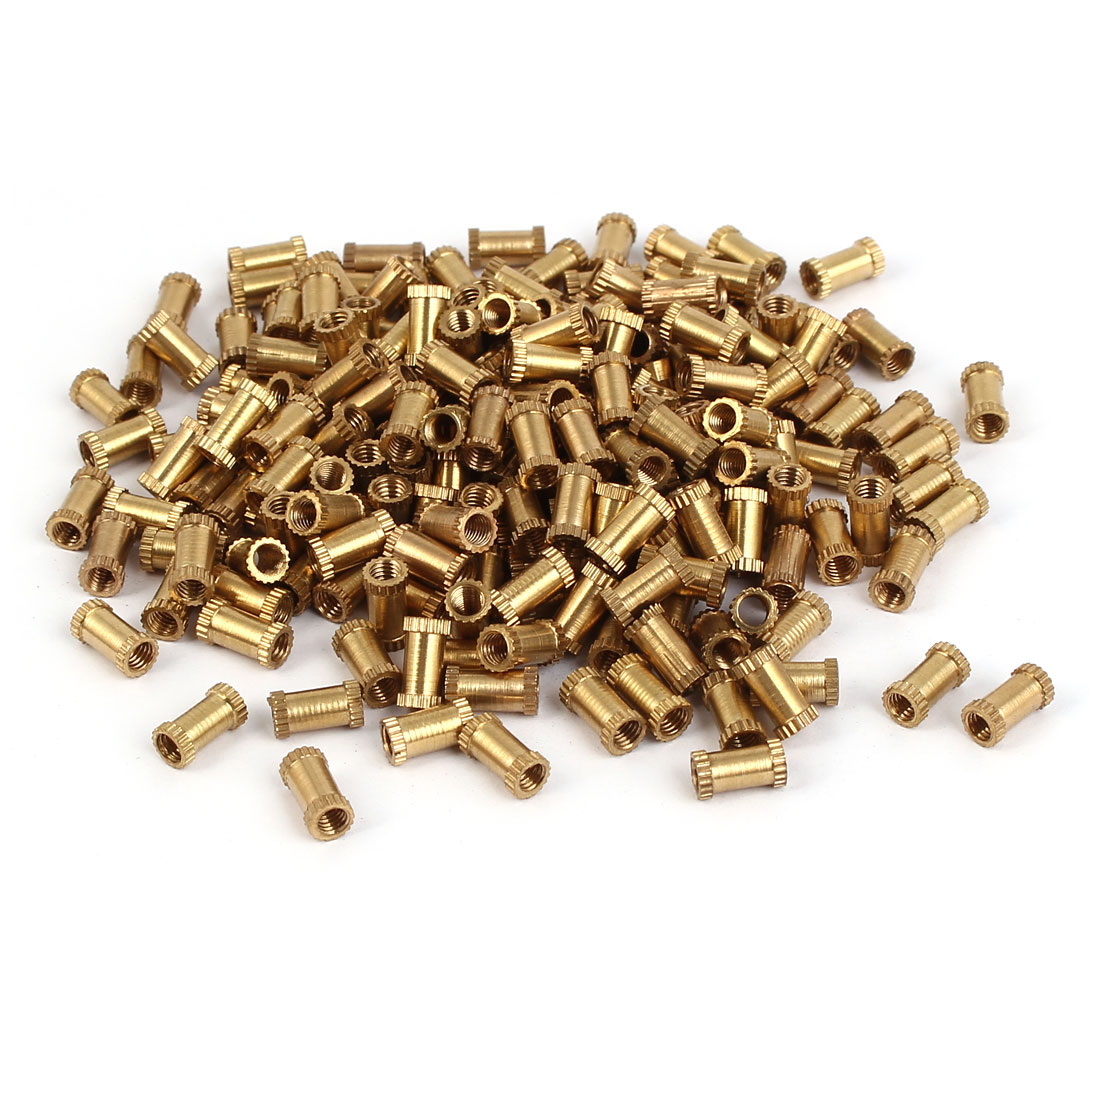 M3 x 8mm Female Thread Brass Knurled Threaded Round Insert Embedded Nuts 200PCS